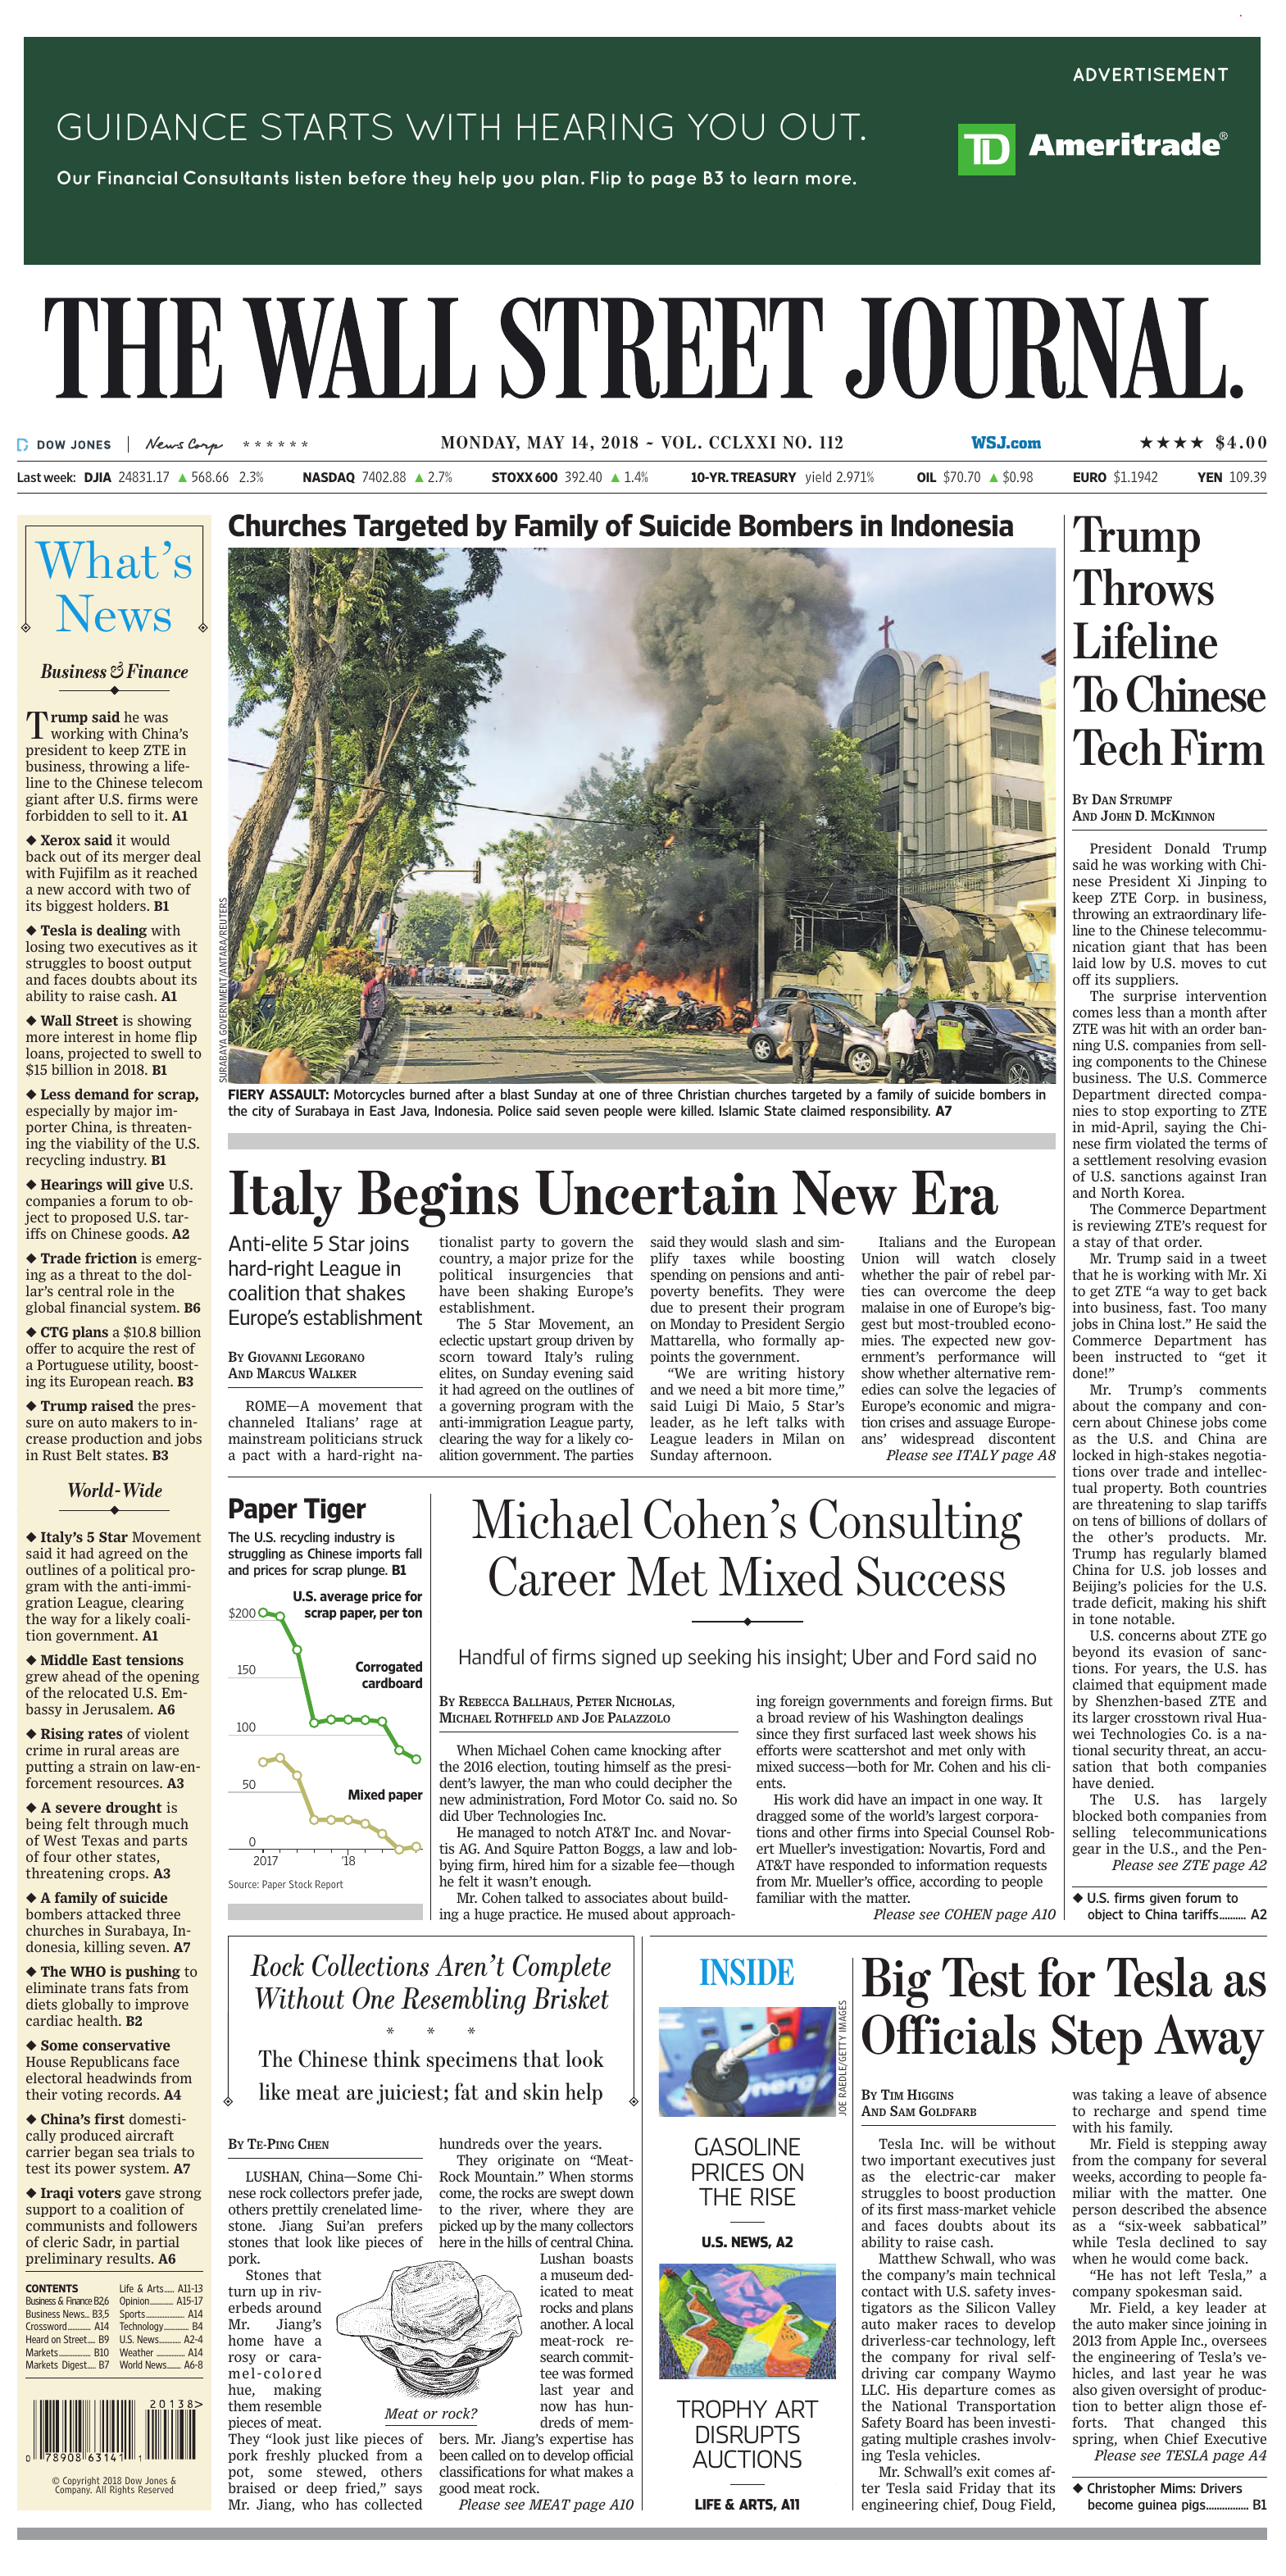 The Wall Street Journal - May 14, 2018